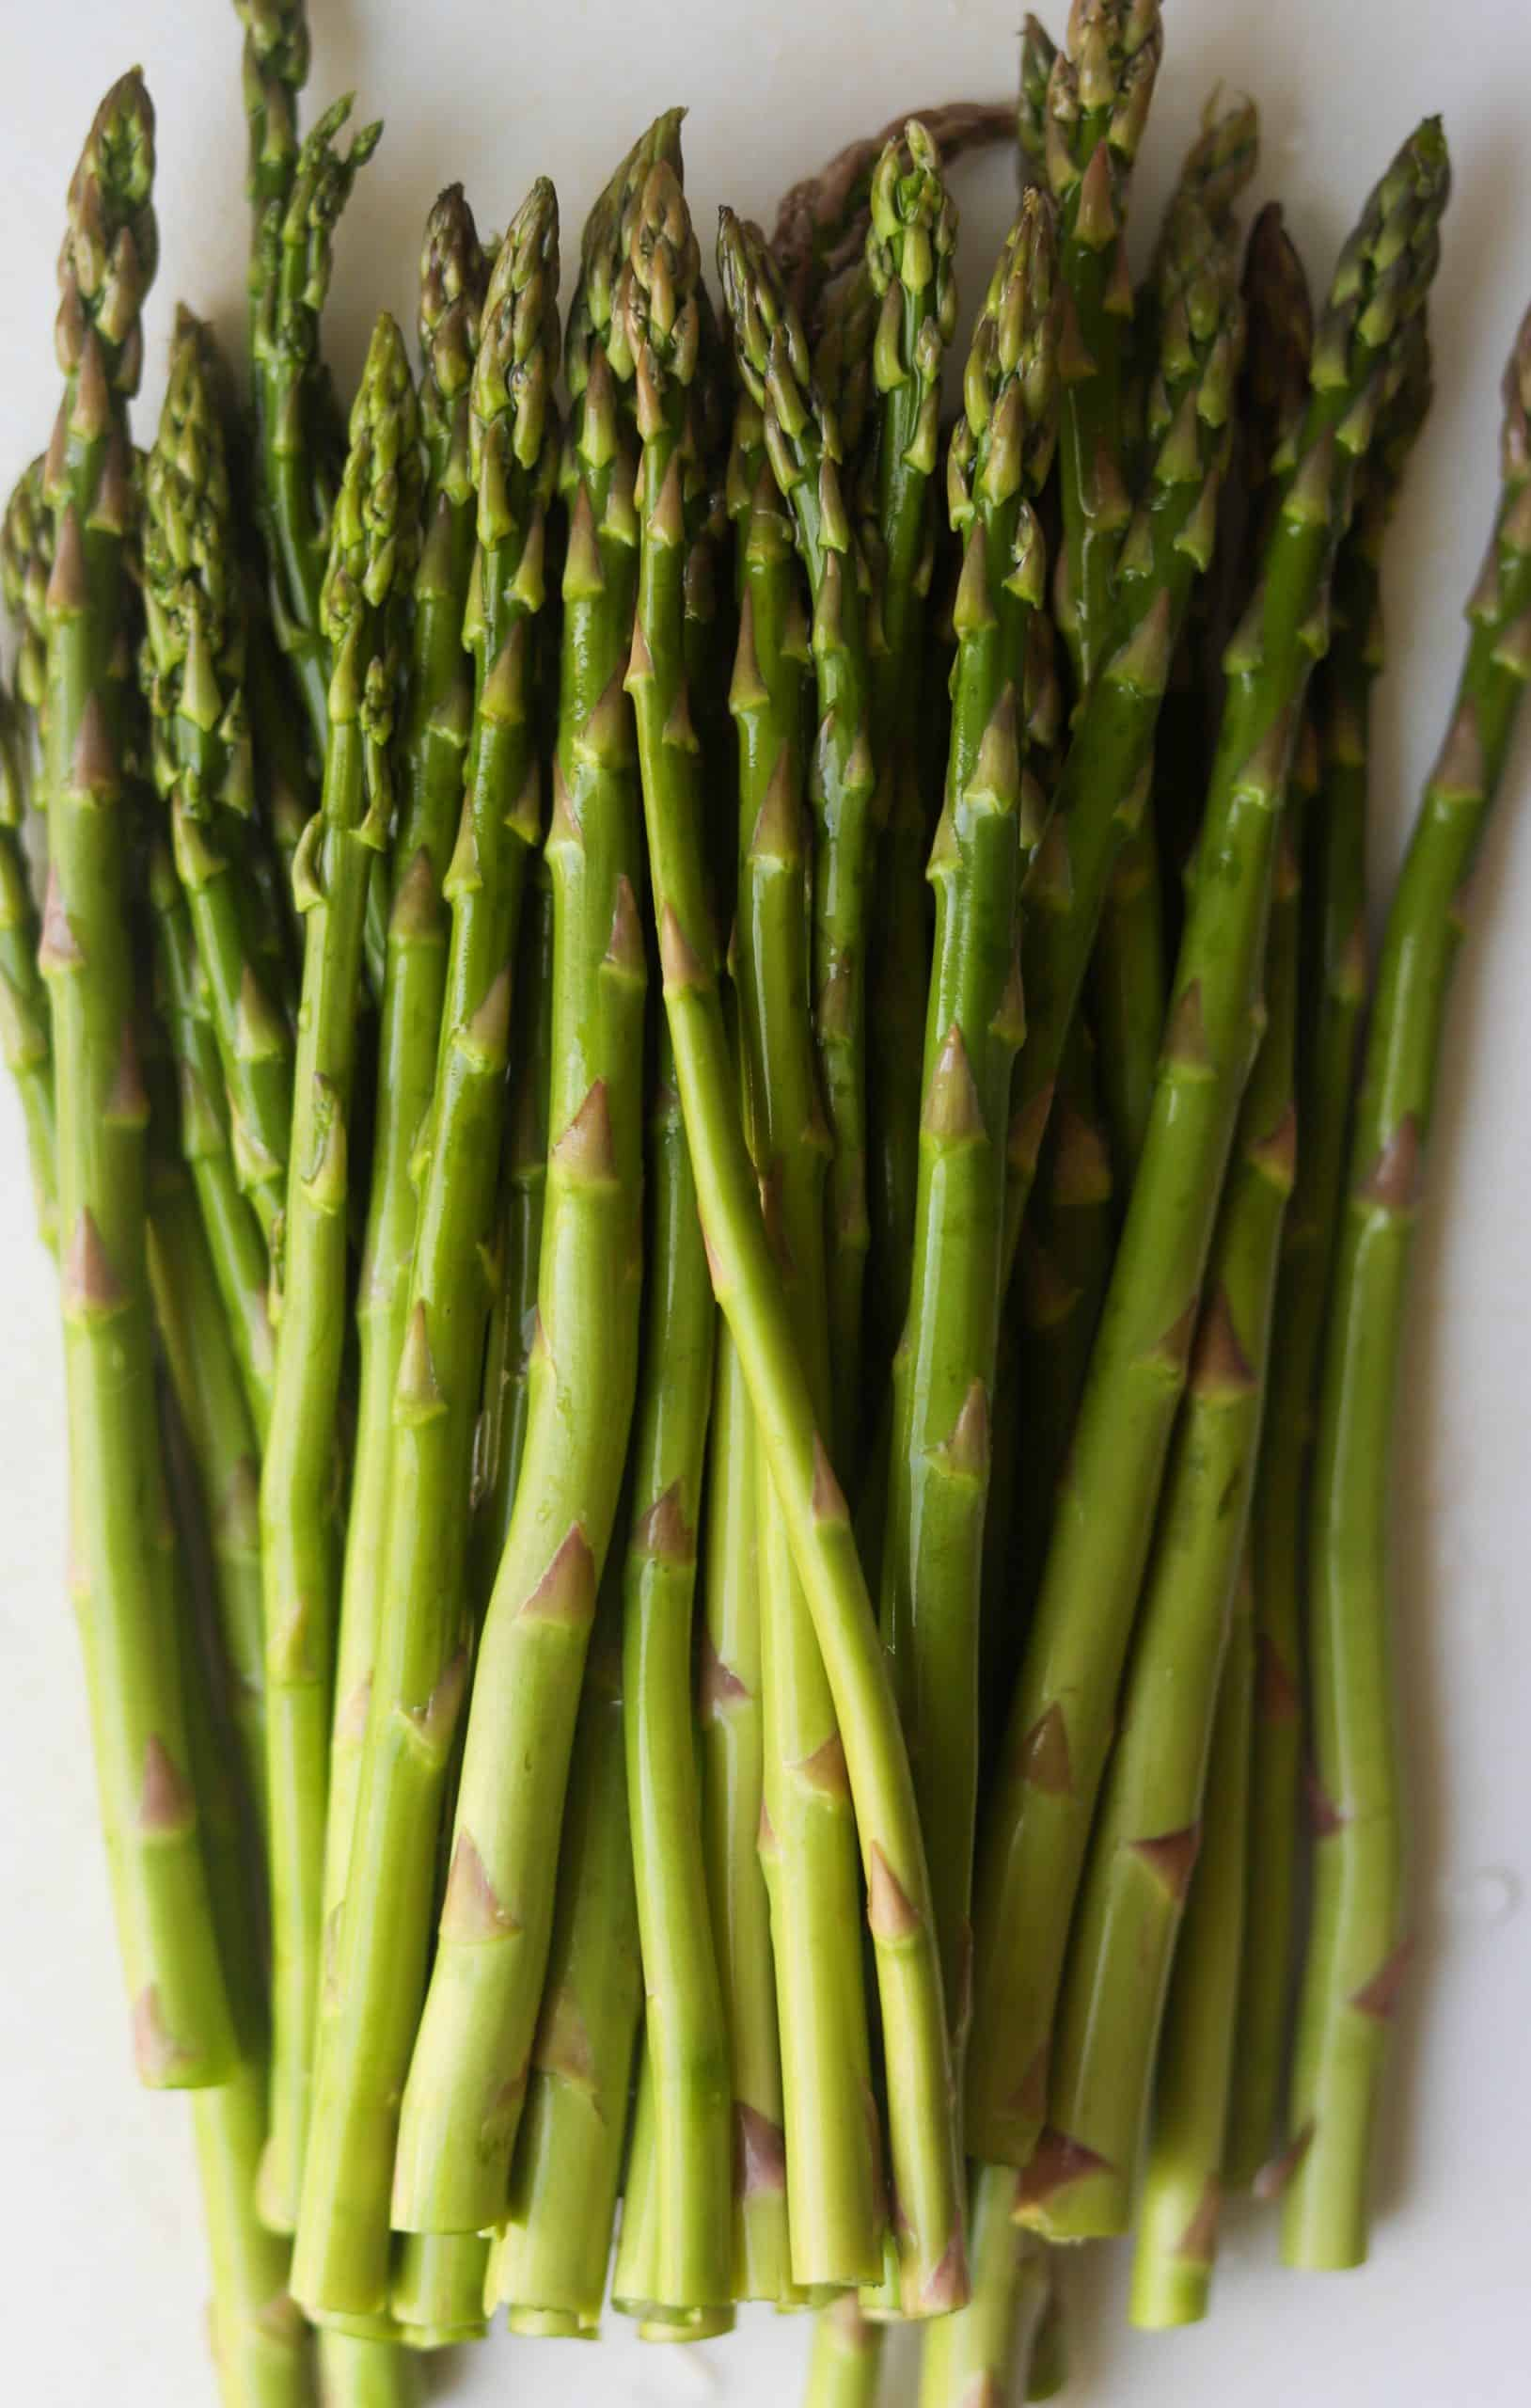 A bunch of asparagus on a white cutting board.